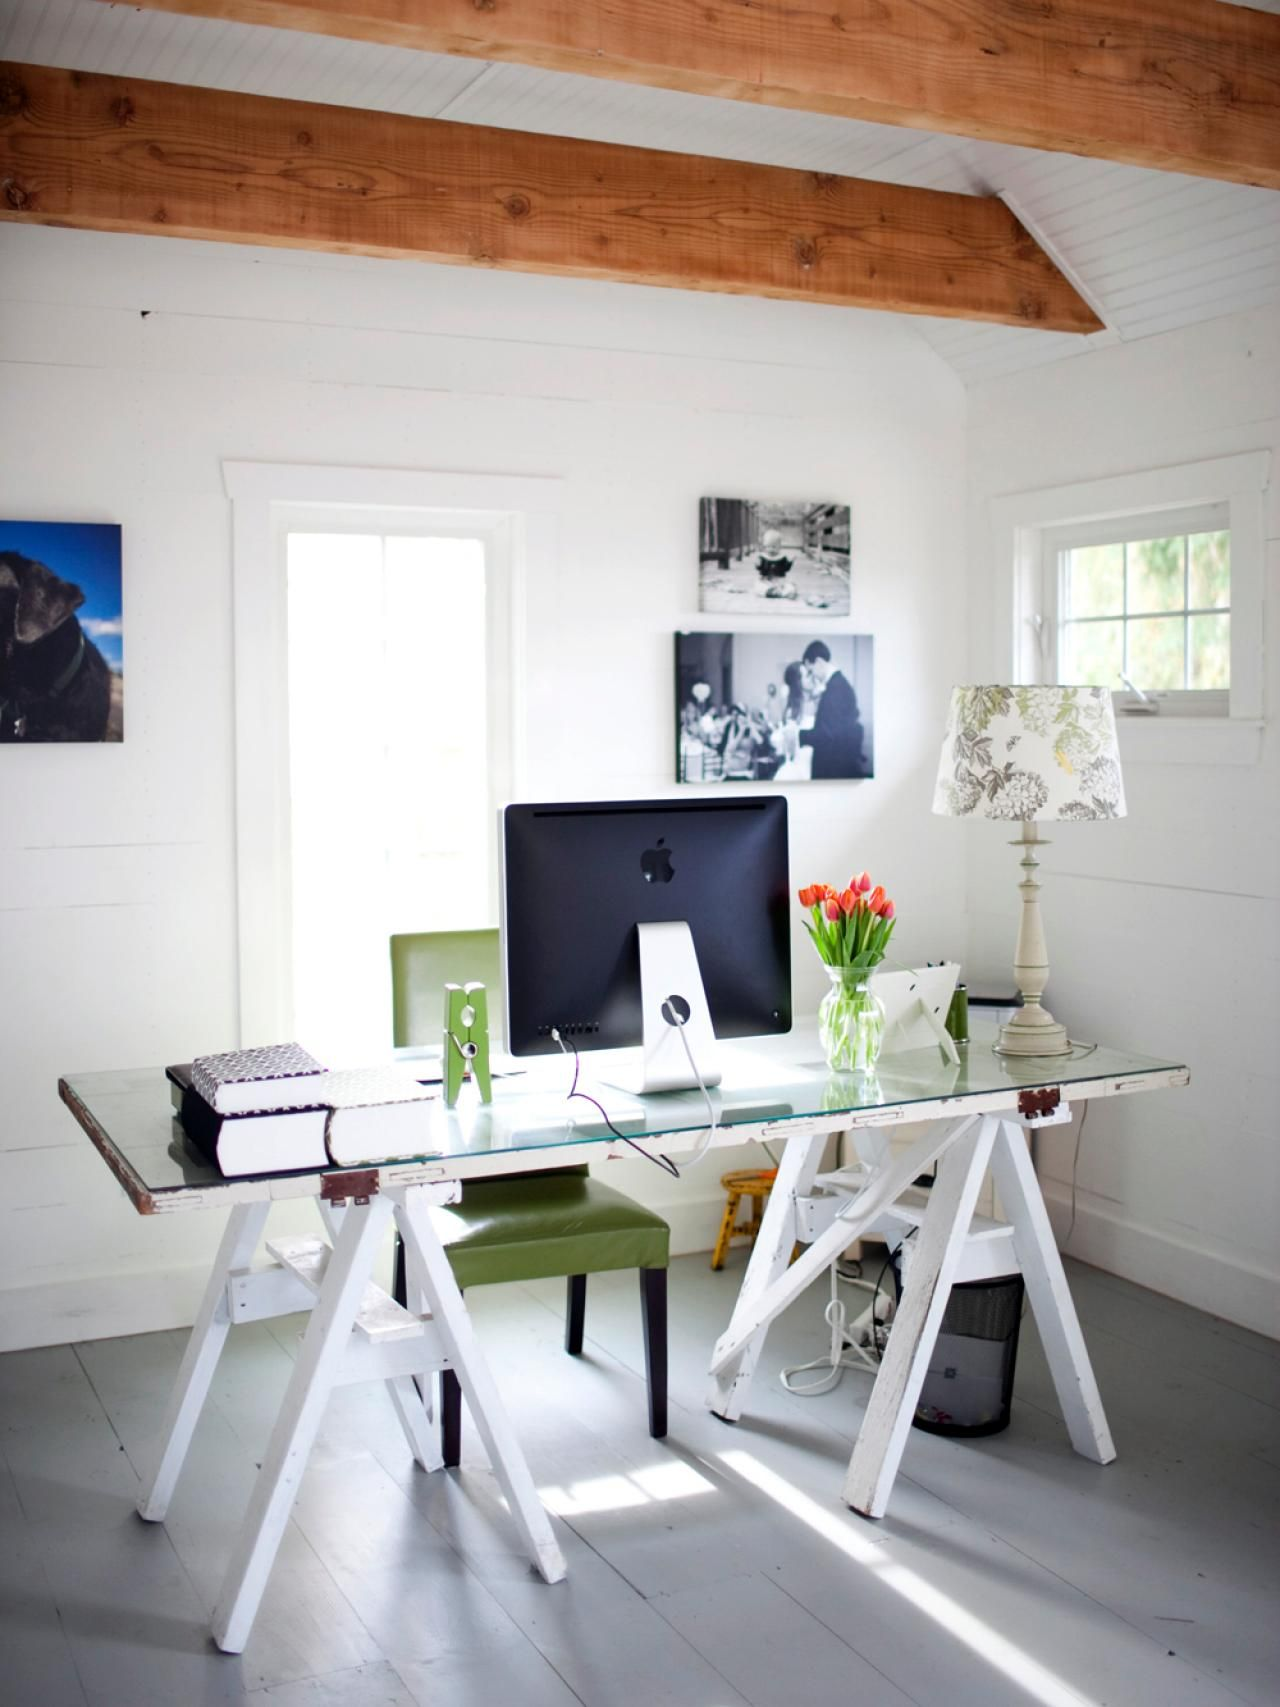 5 Quick Tips for Home Office Organization | Antique stores, Desks ...